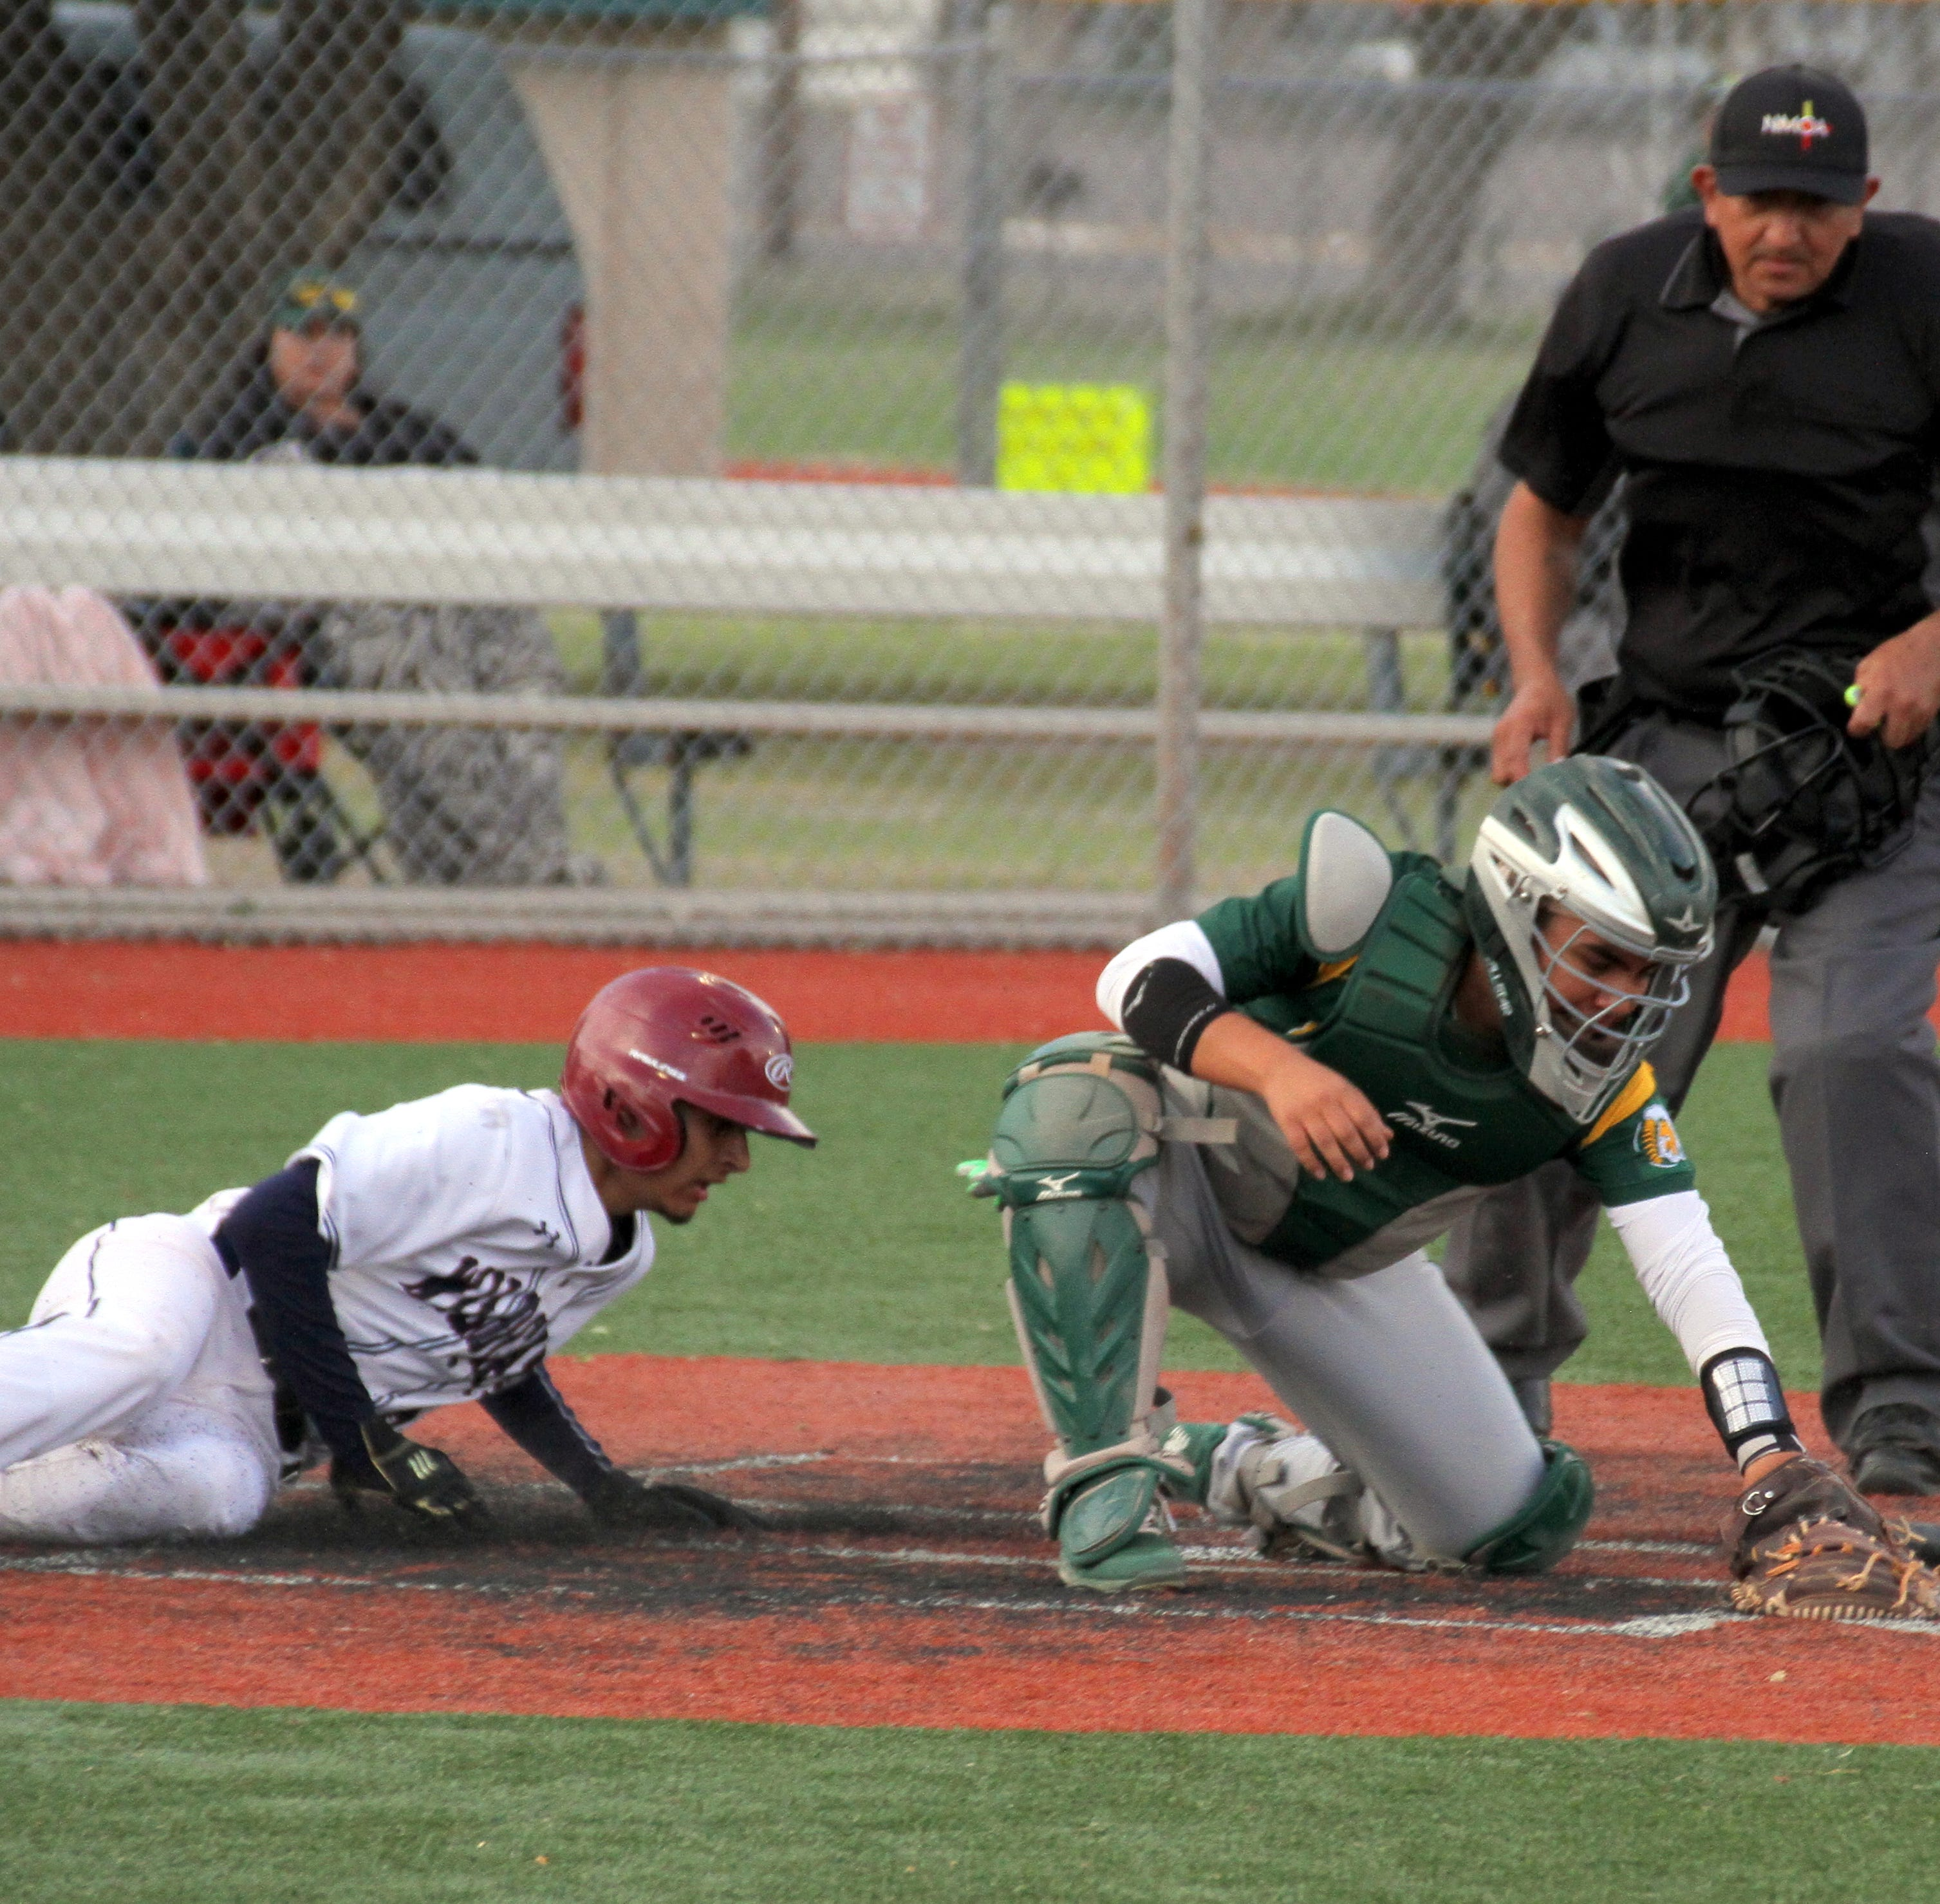 Mayfield mauls Deming Wildcats 11-6 in District 3-5A baseball